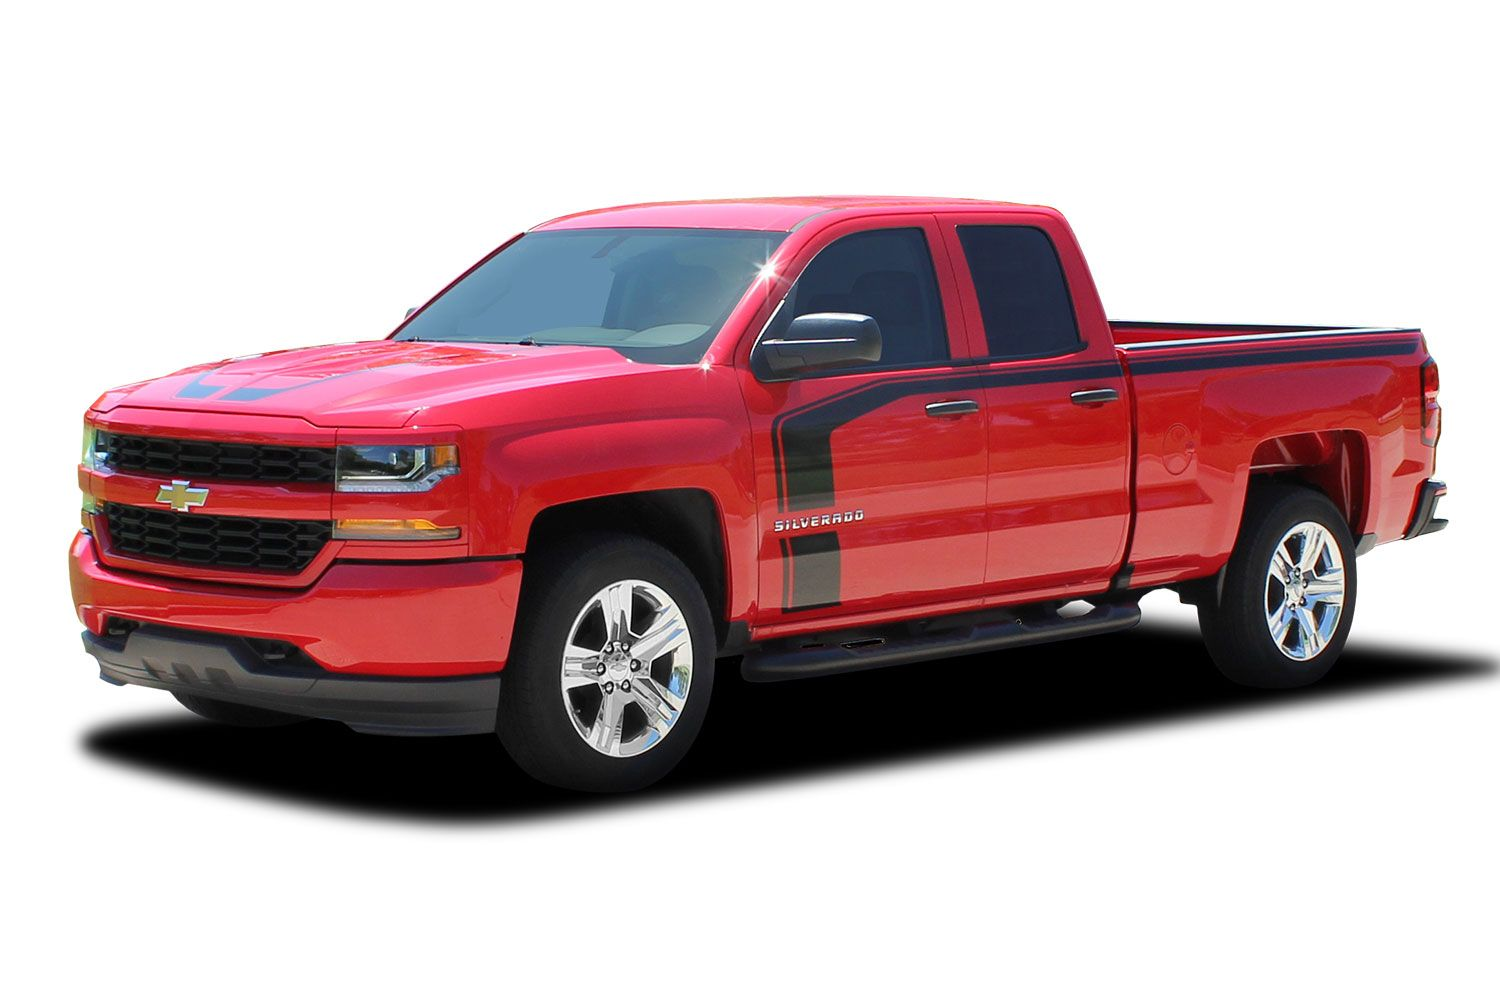 2016 2017 2018 chevy silverado special edition stripes flow rally decals truck hood and side. Black Bedroom Furniture Sets. Home Design Ideas